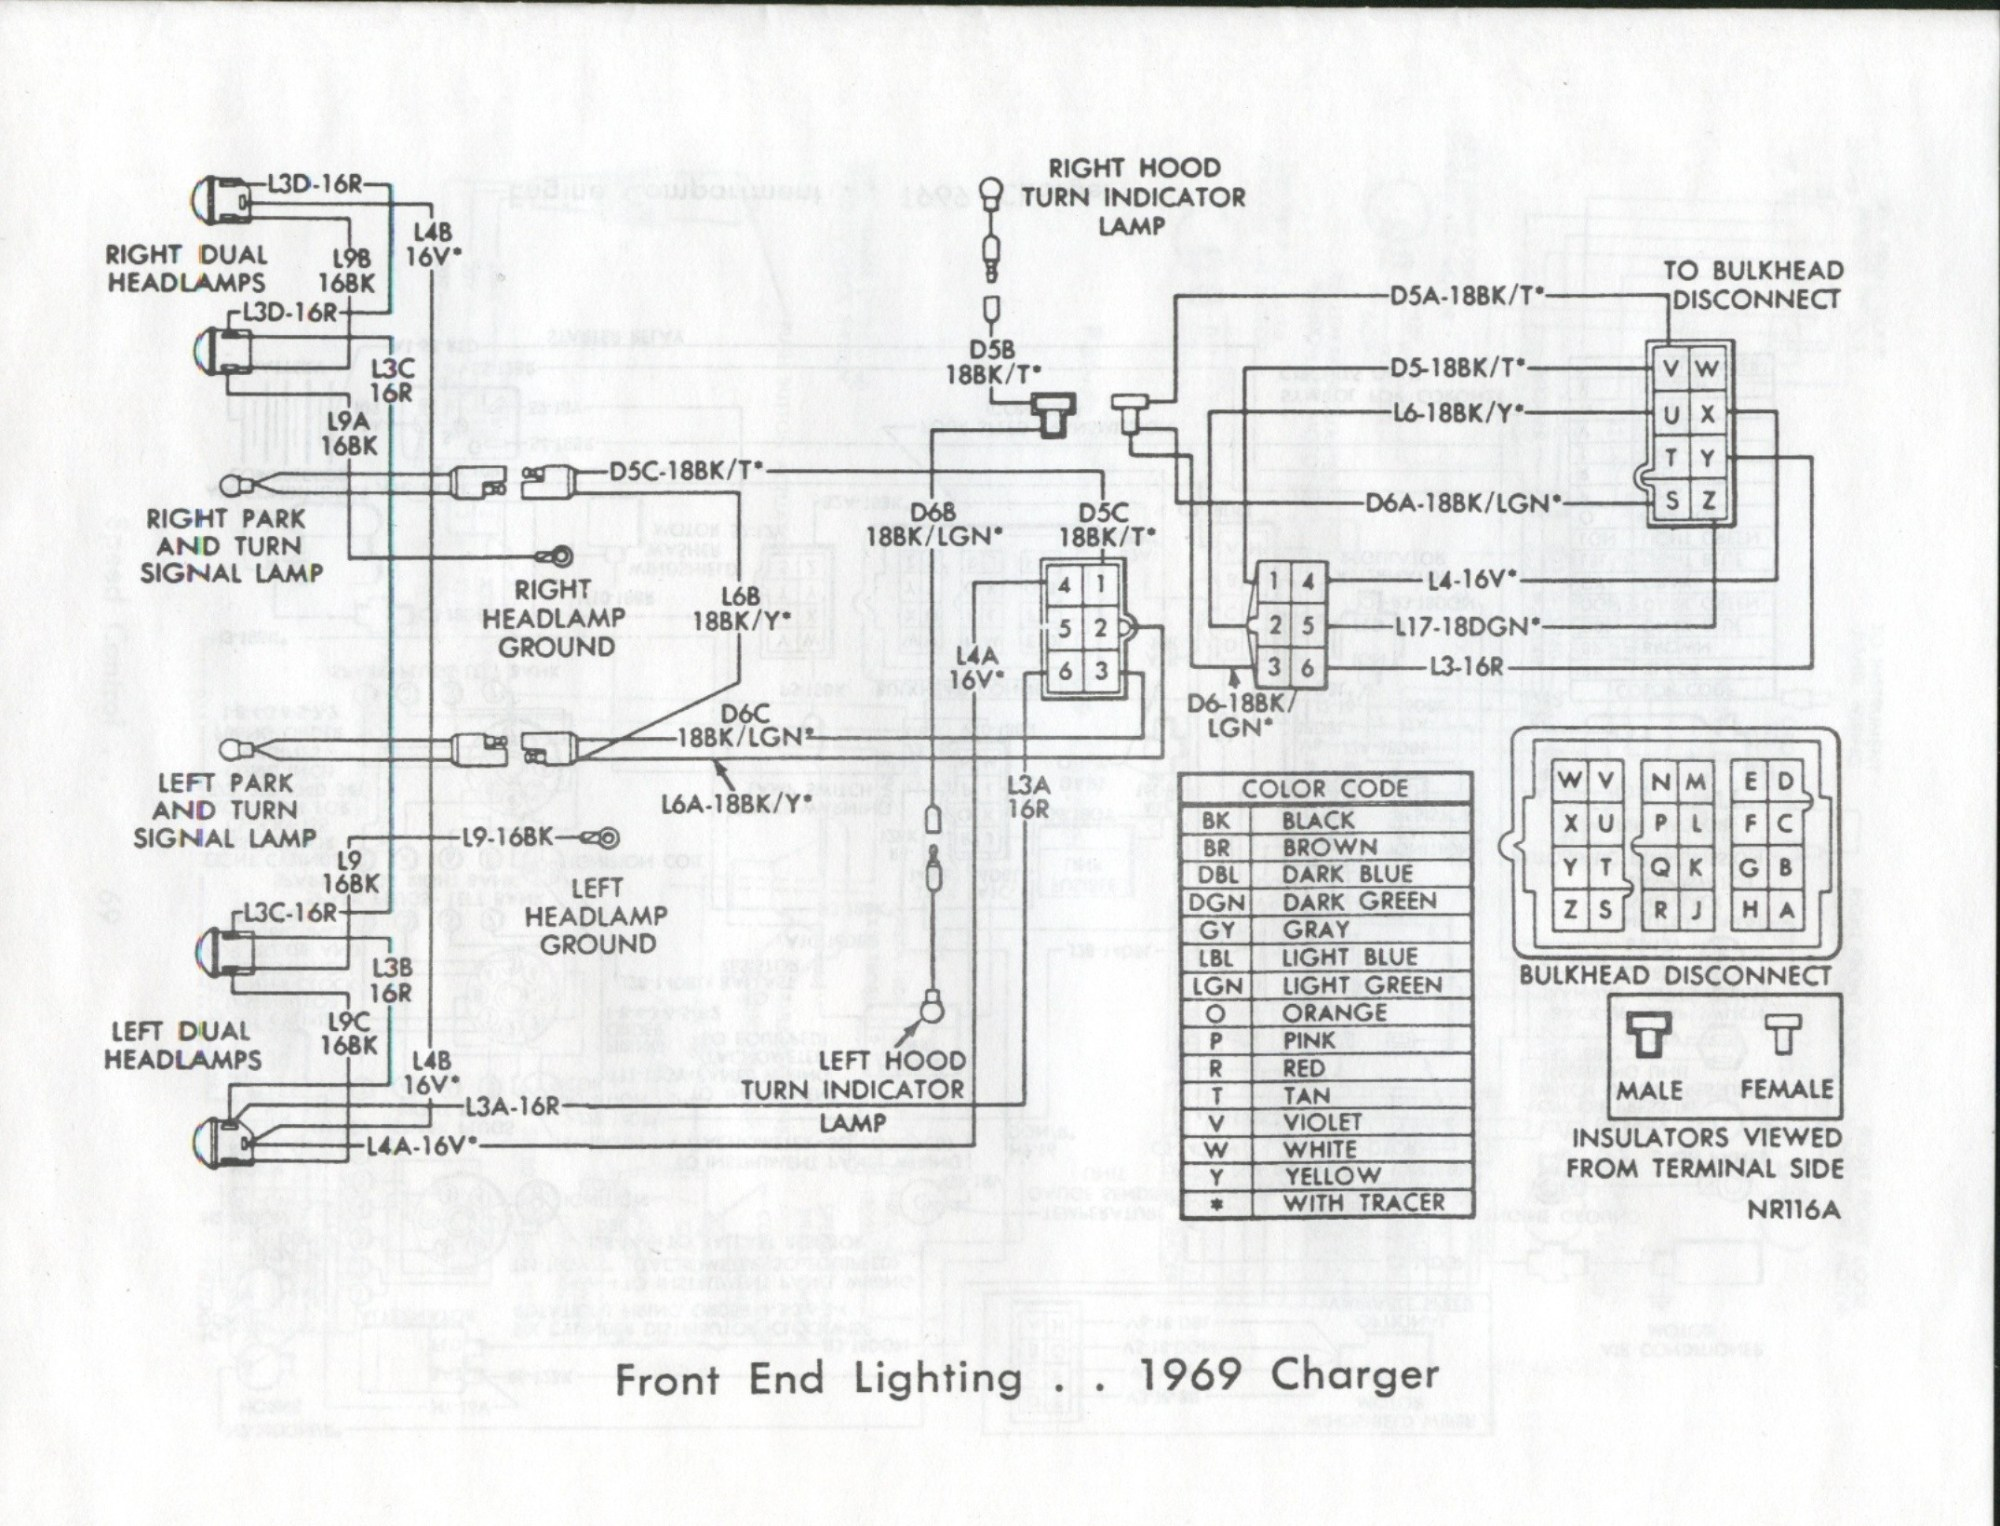 hight resolution of 1969 dodge charger wiring harness diagram wiring diagram 69 charger headlight wiring diagram